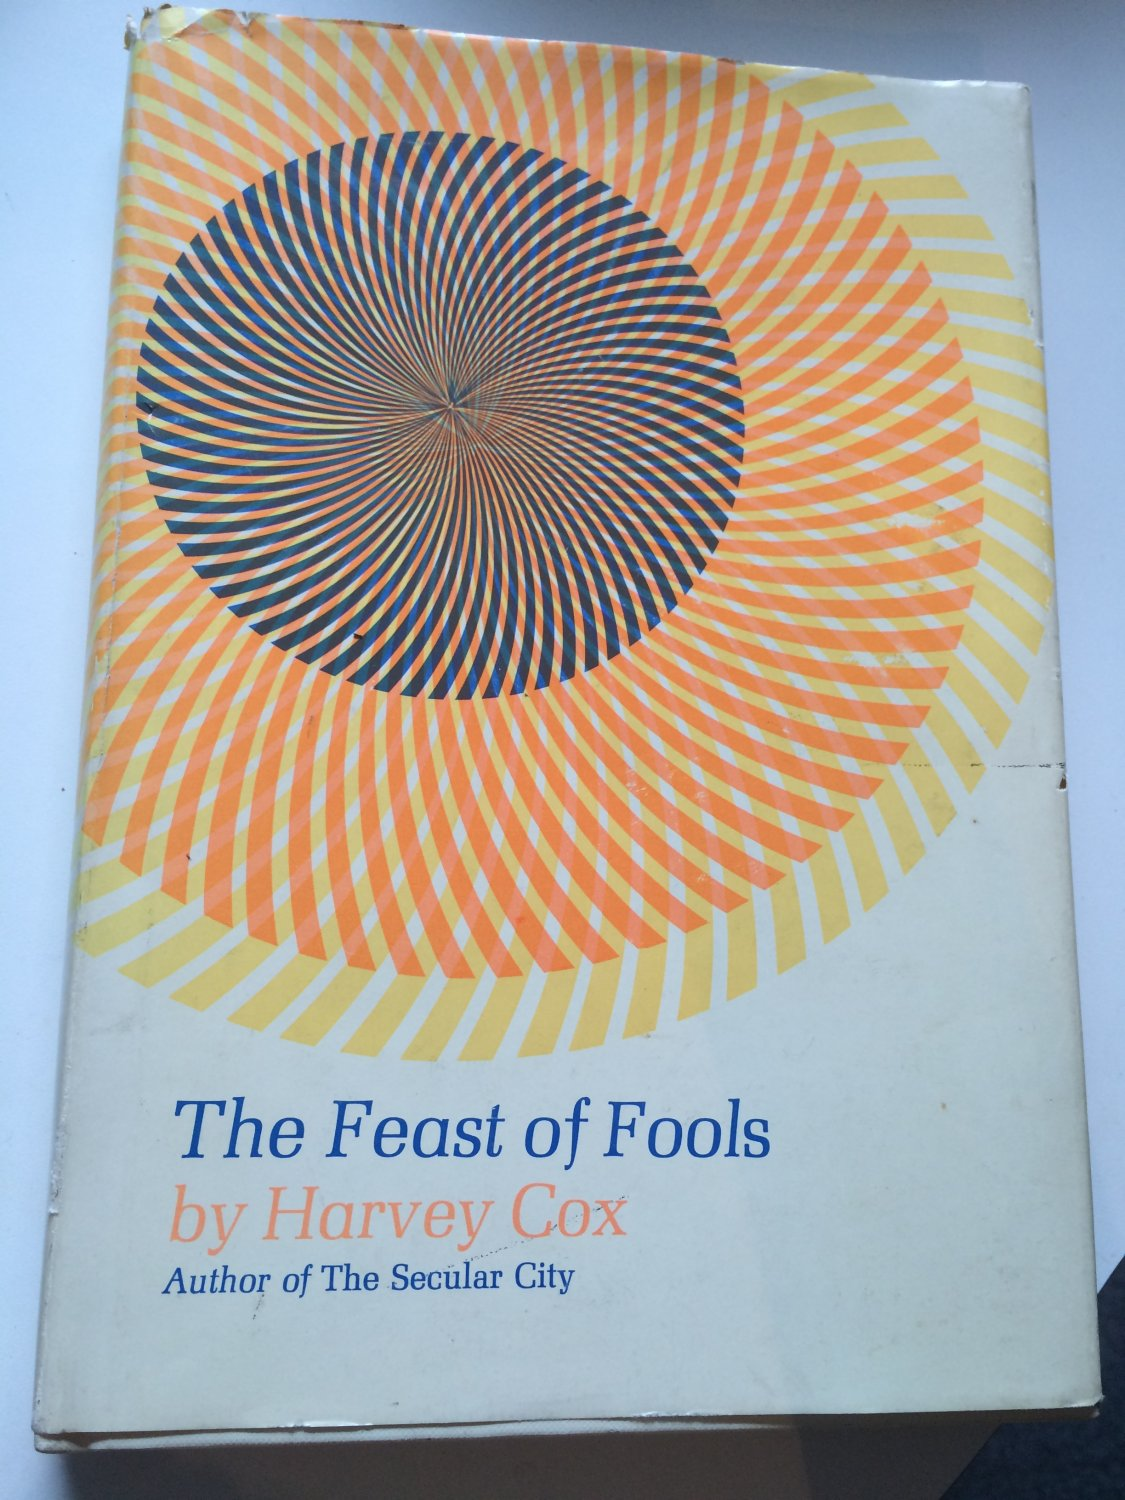 The Feast of Fools: A Theological Essay on Festivity and Fantasy by Harvey Cox